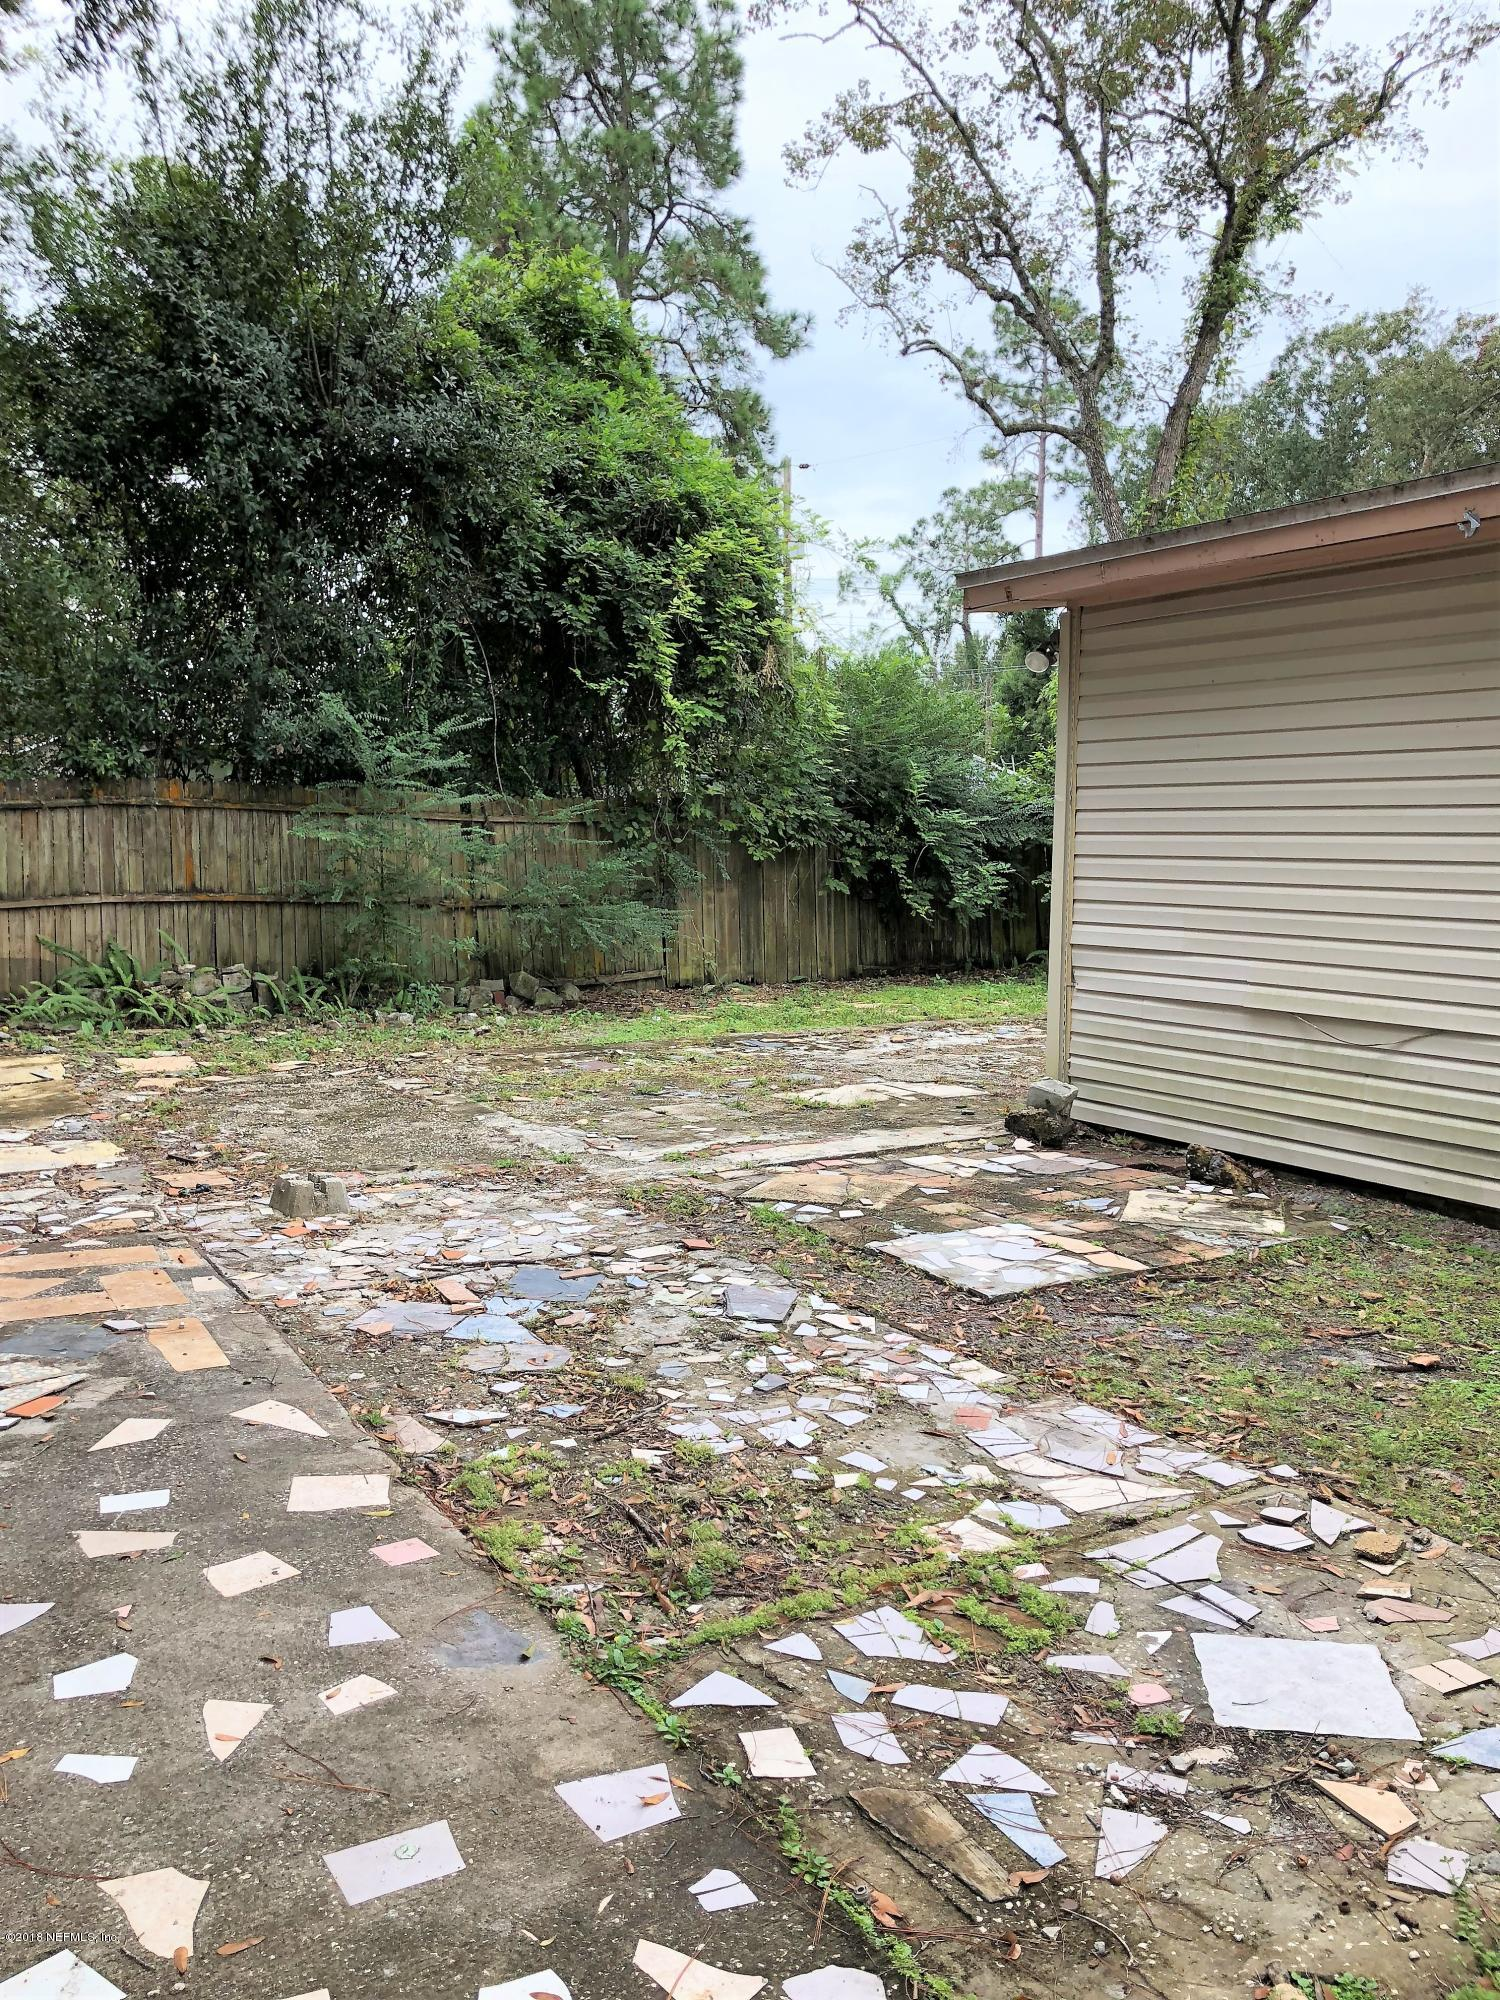 2105 KITTY, JACKSONVILLE, FLORIDA 32246, 3 Bedrooms Bedrooms, ,2 BathroomsBathrooms,Residential - single family,For sale,KITTY,965480